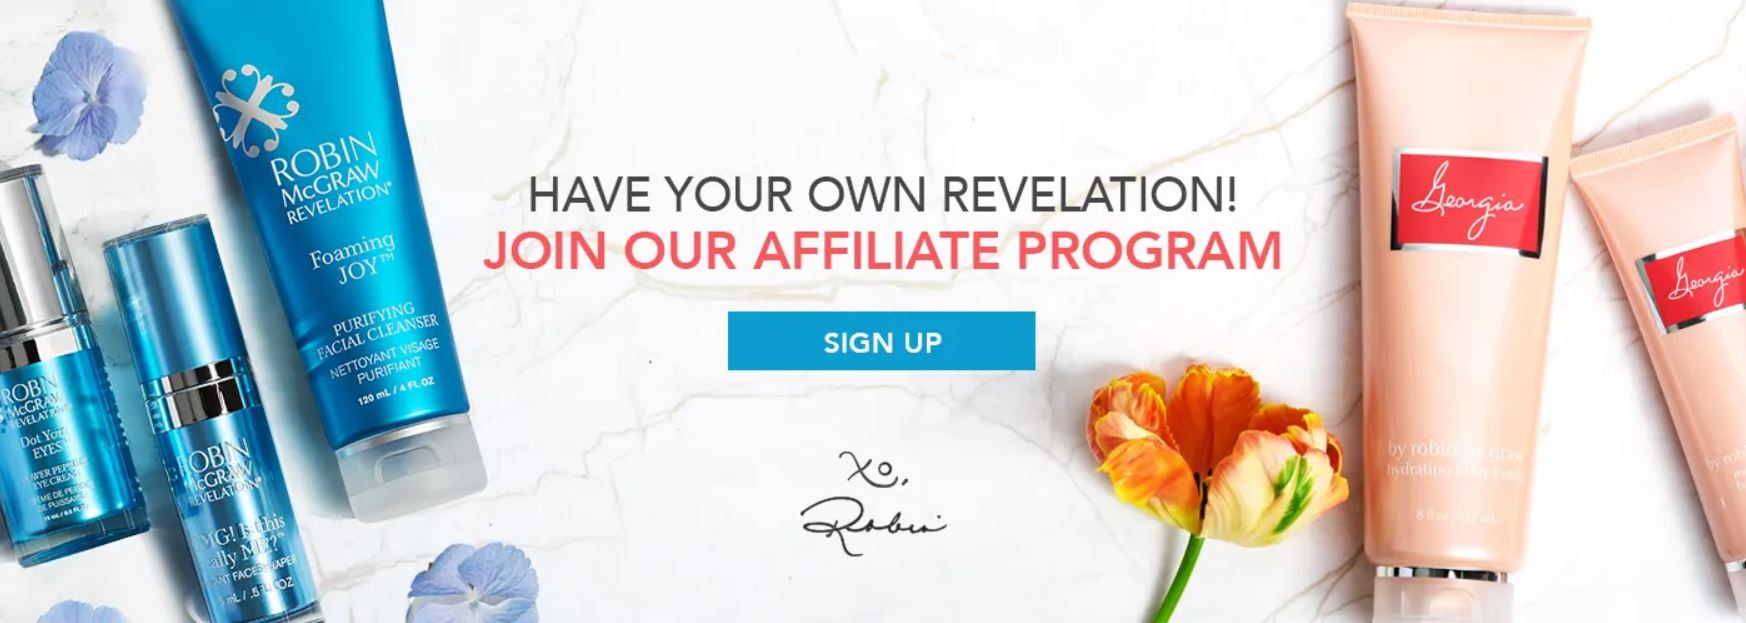 Have your own Revelation! Join our affiliate program